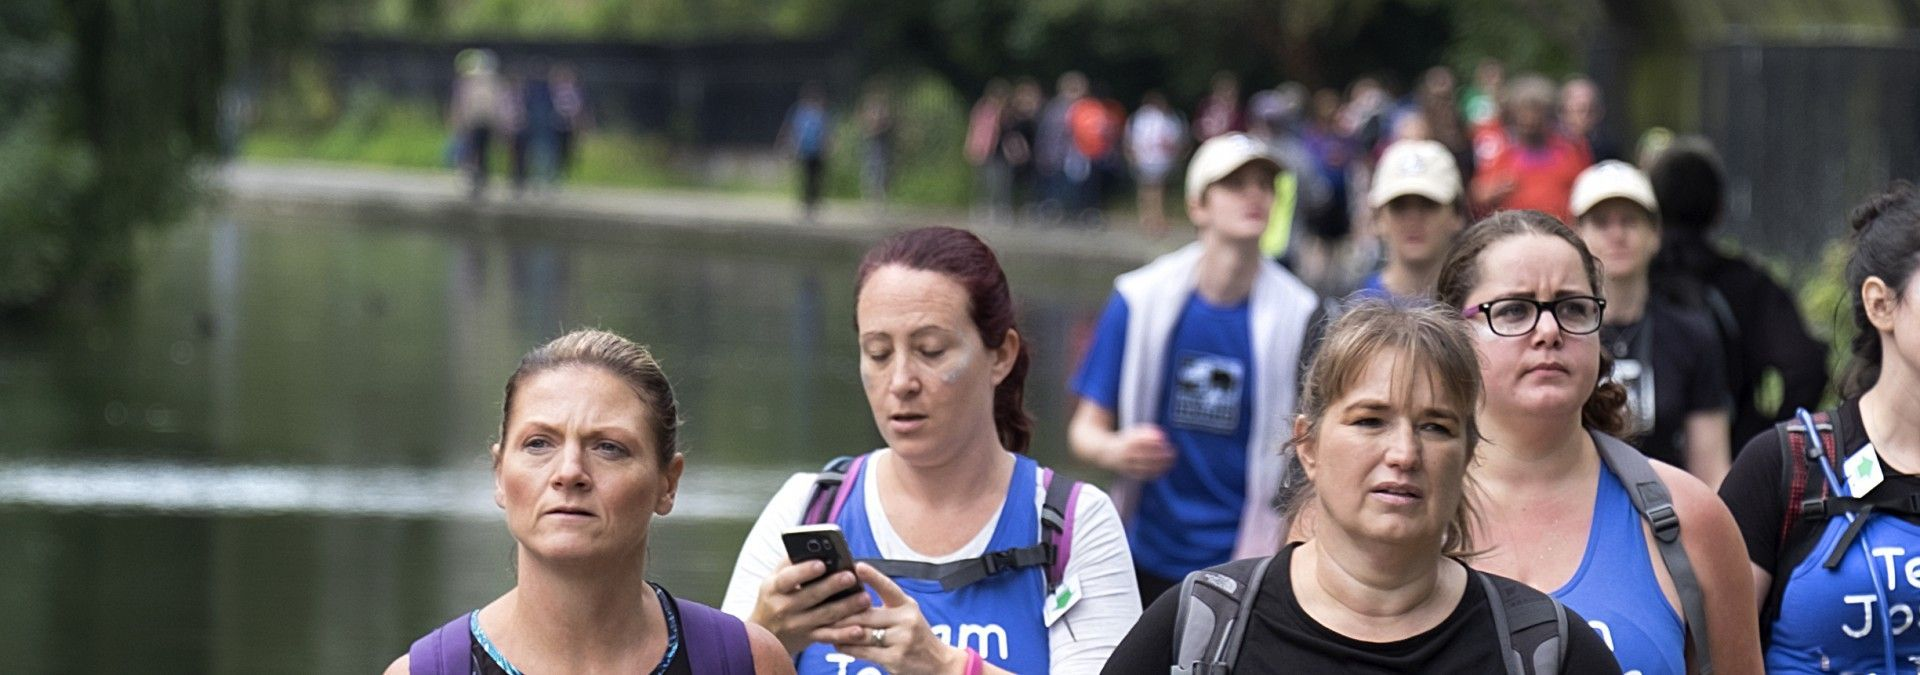 Marathon_Walk_London_Park.jpg